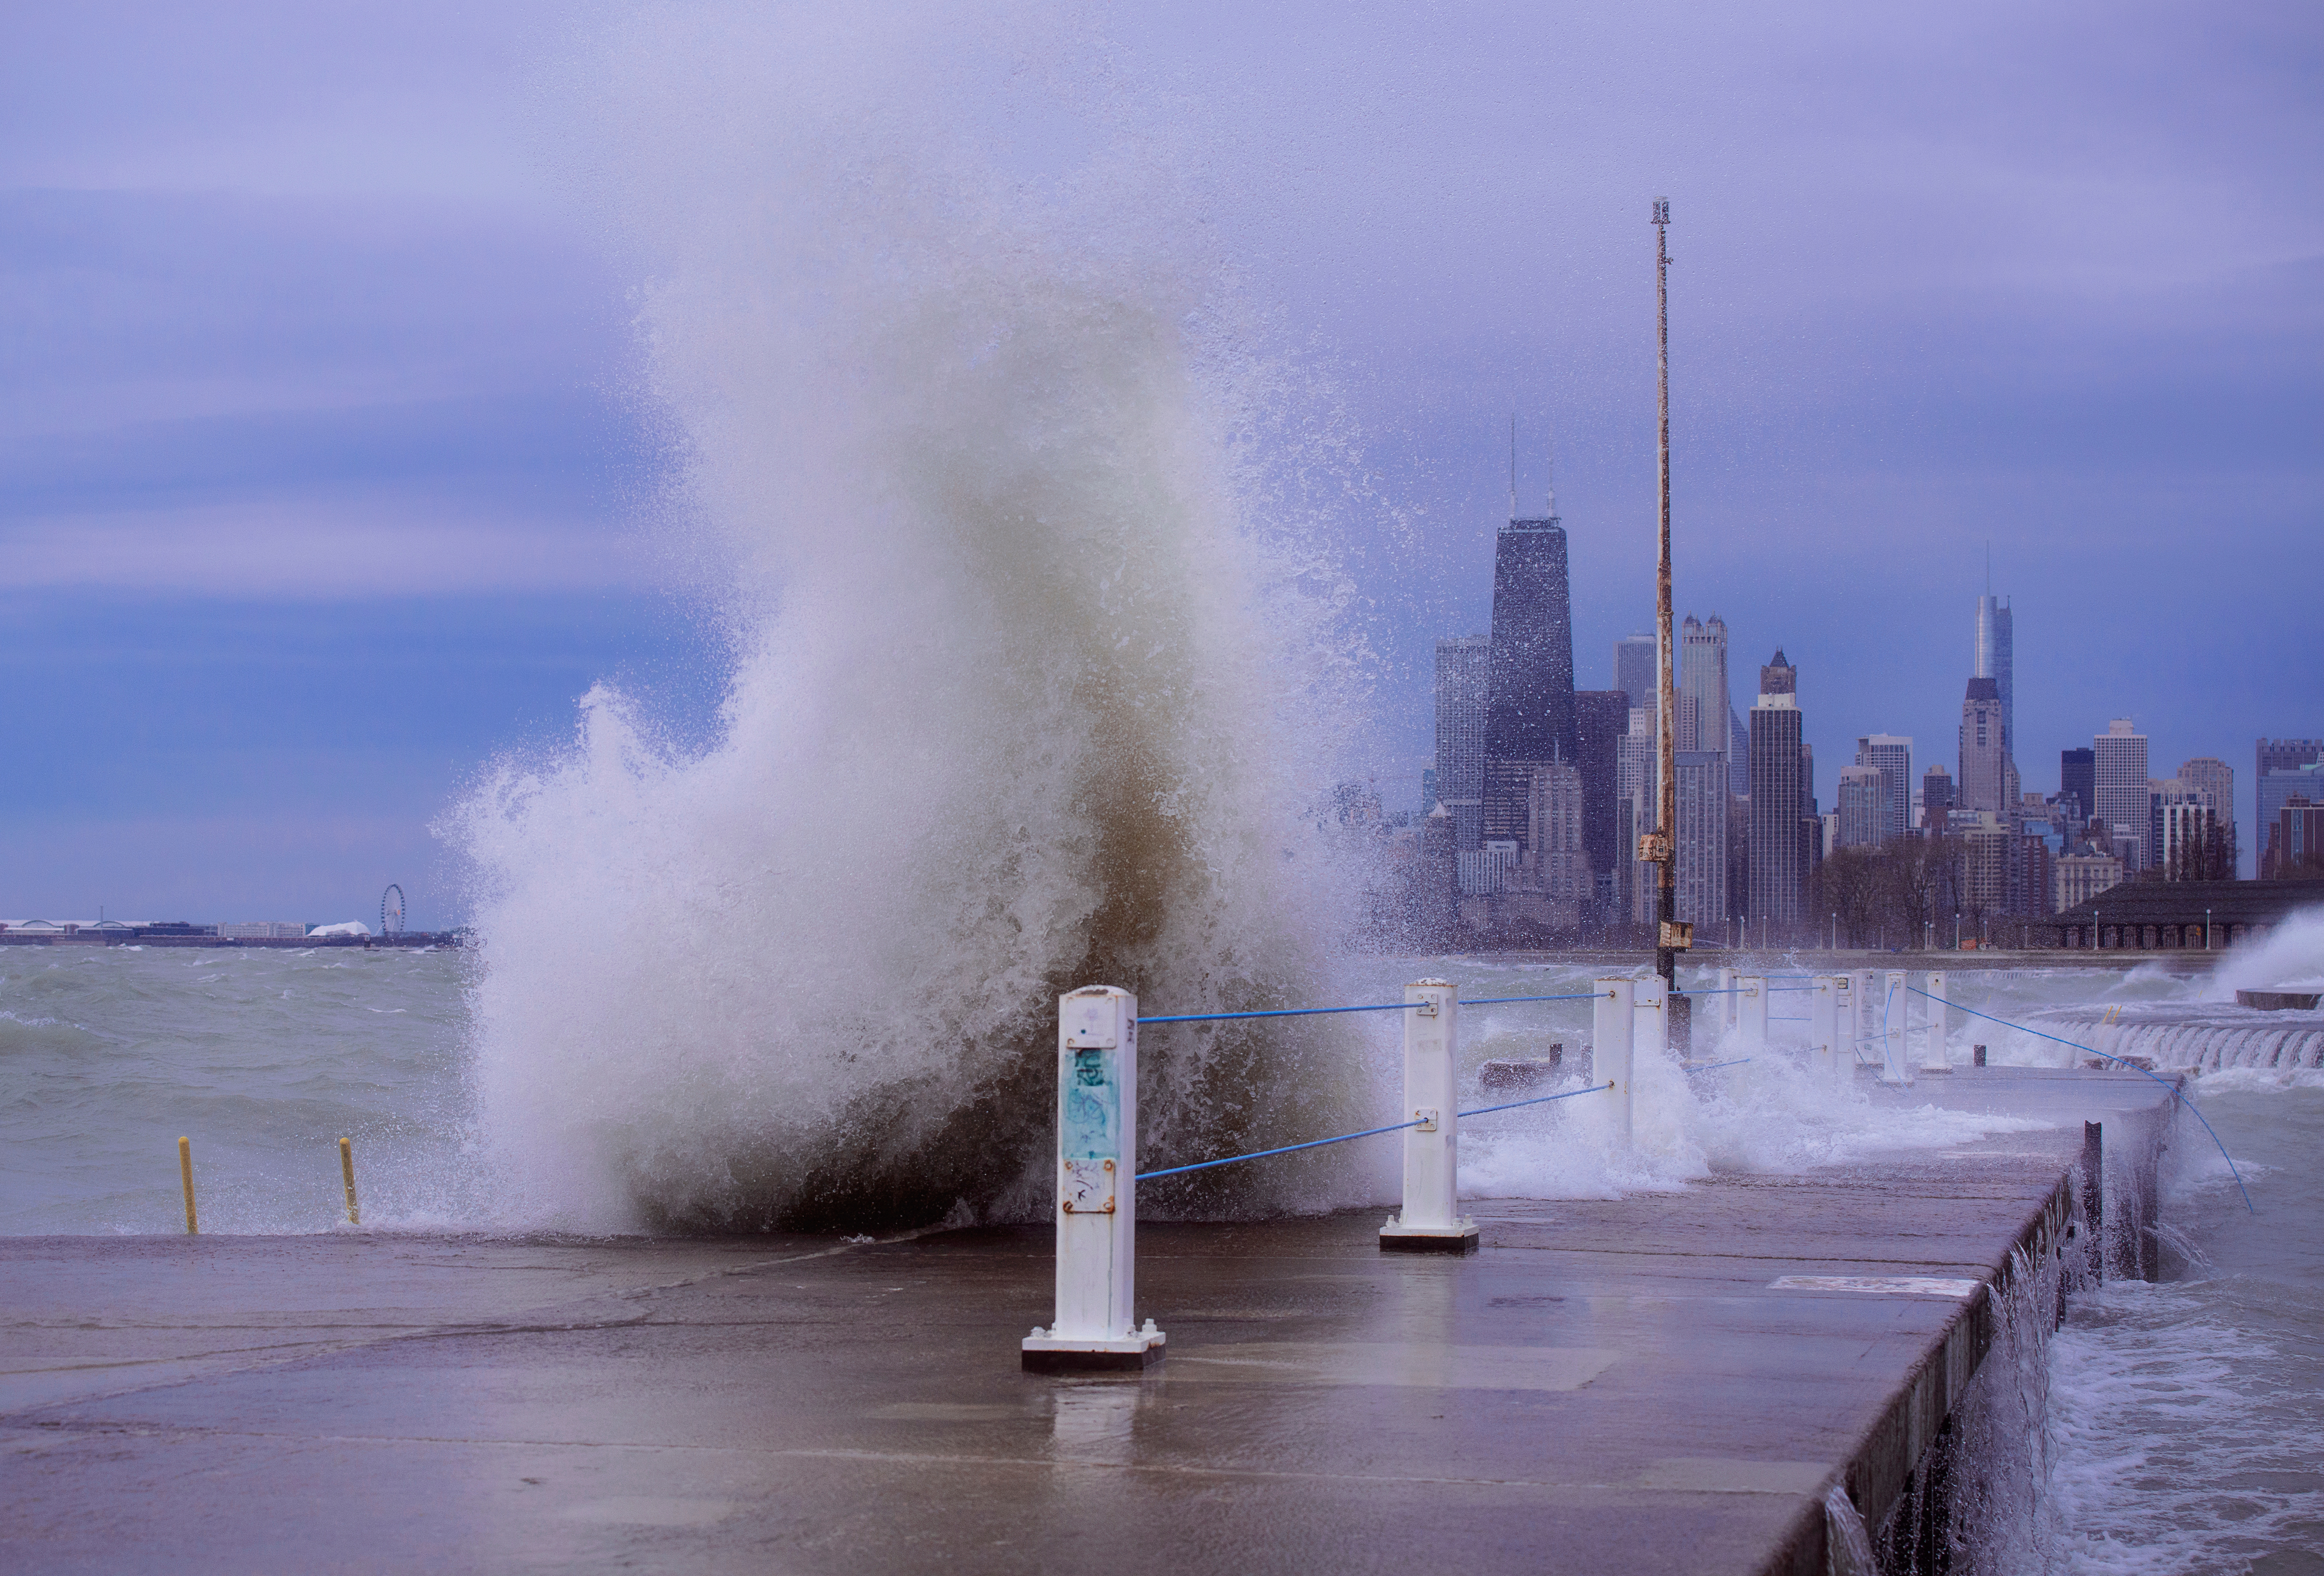 A large wave breaks over a concrete and metal pier next to a body of water. A row of tall buildings rises in the distance.